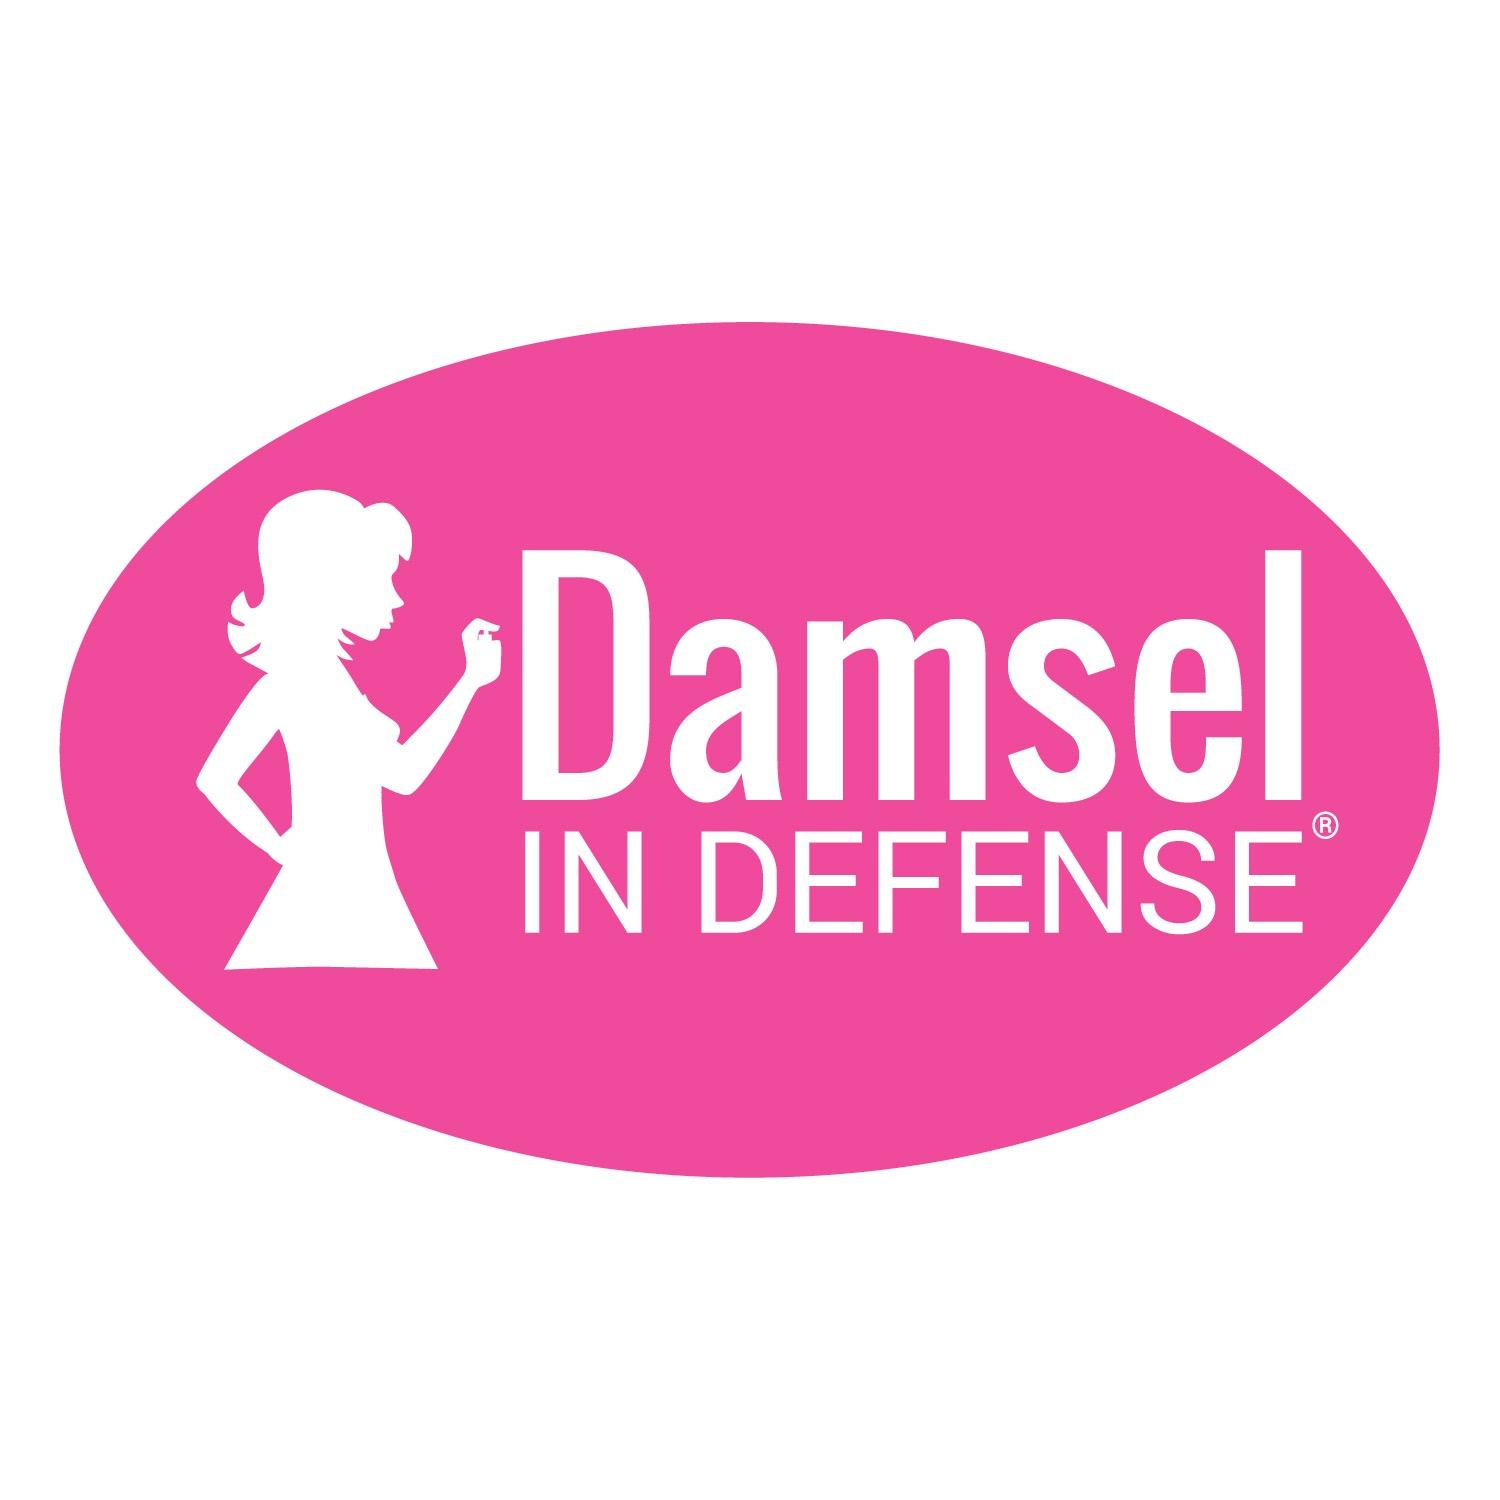 HIPS Fitness Bright Horizons Family FunFit Expo damsel in defense